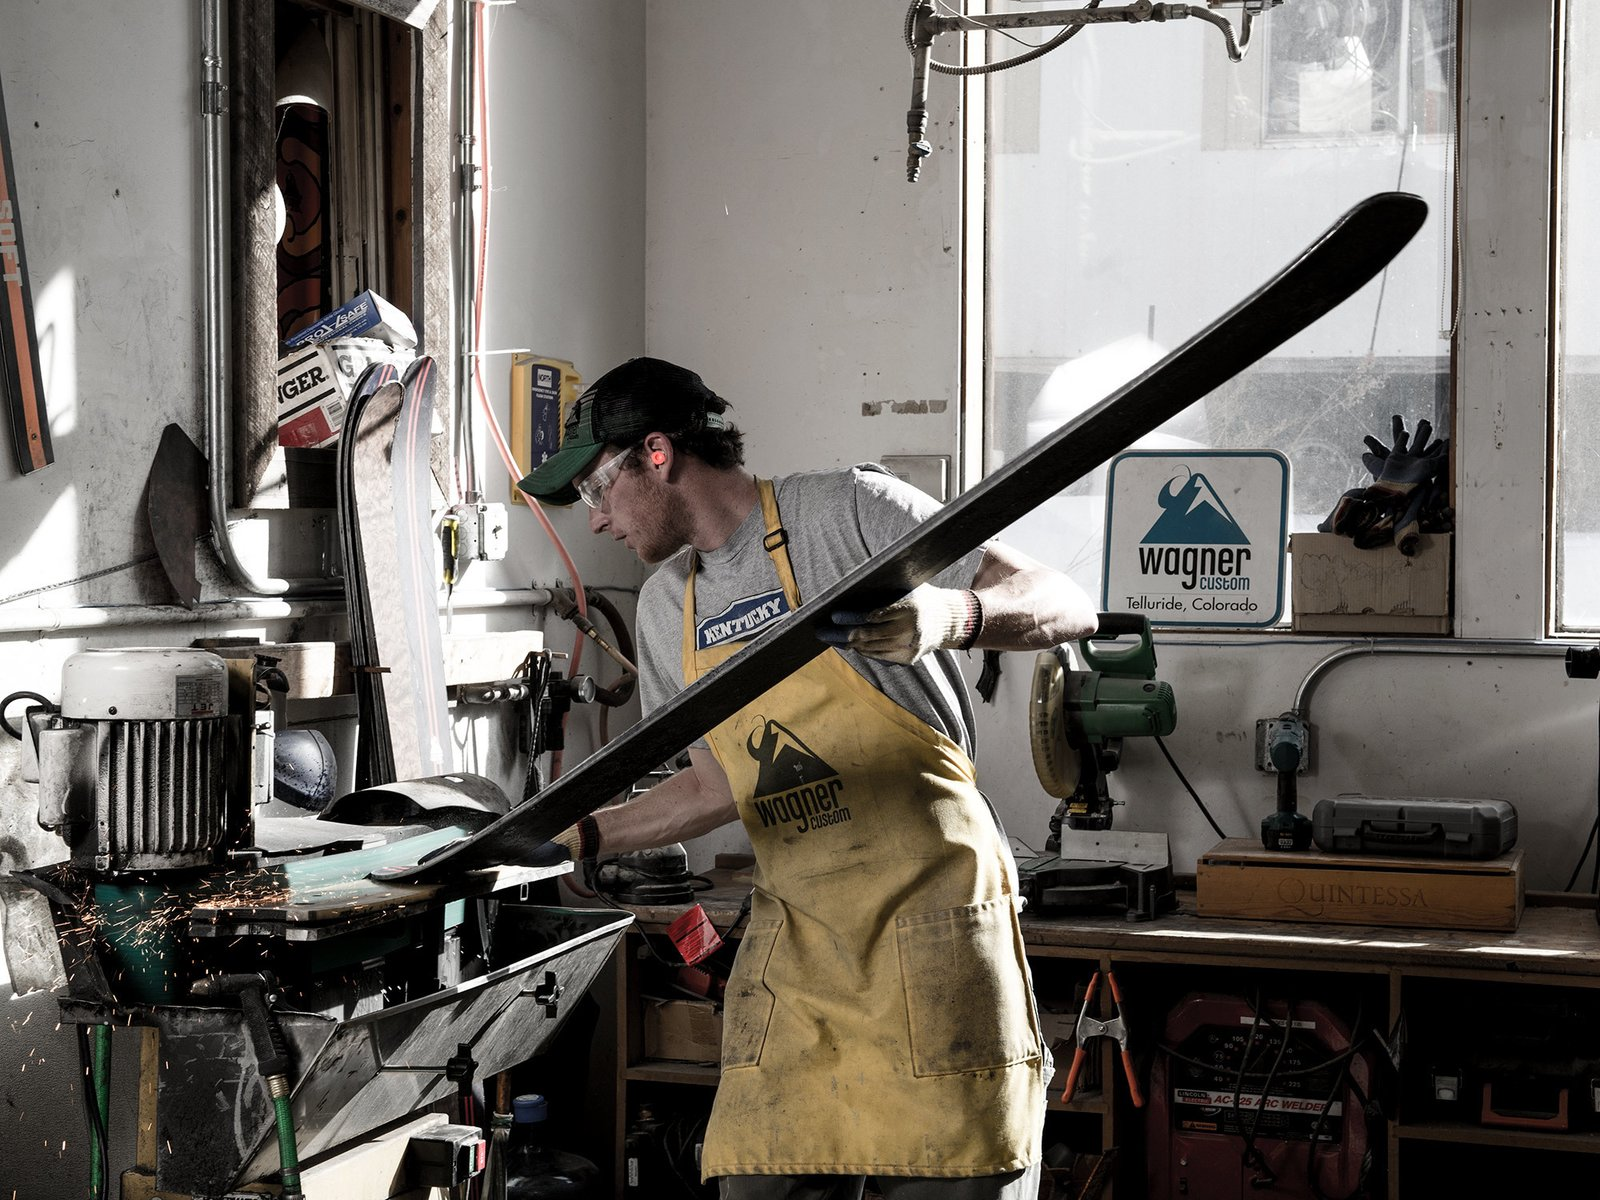 Photo 4 of 6 in Wagner Custom - The Science And Art Of Building The Perfect Bespoke Skis